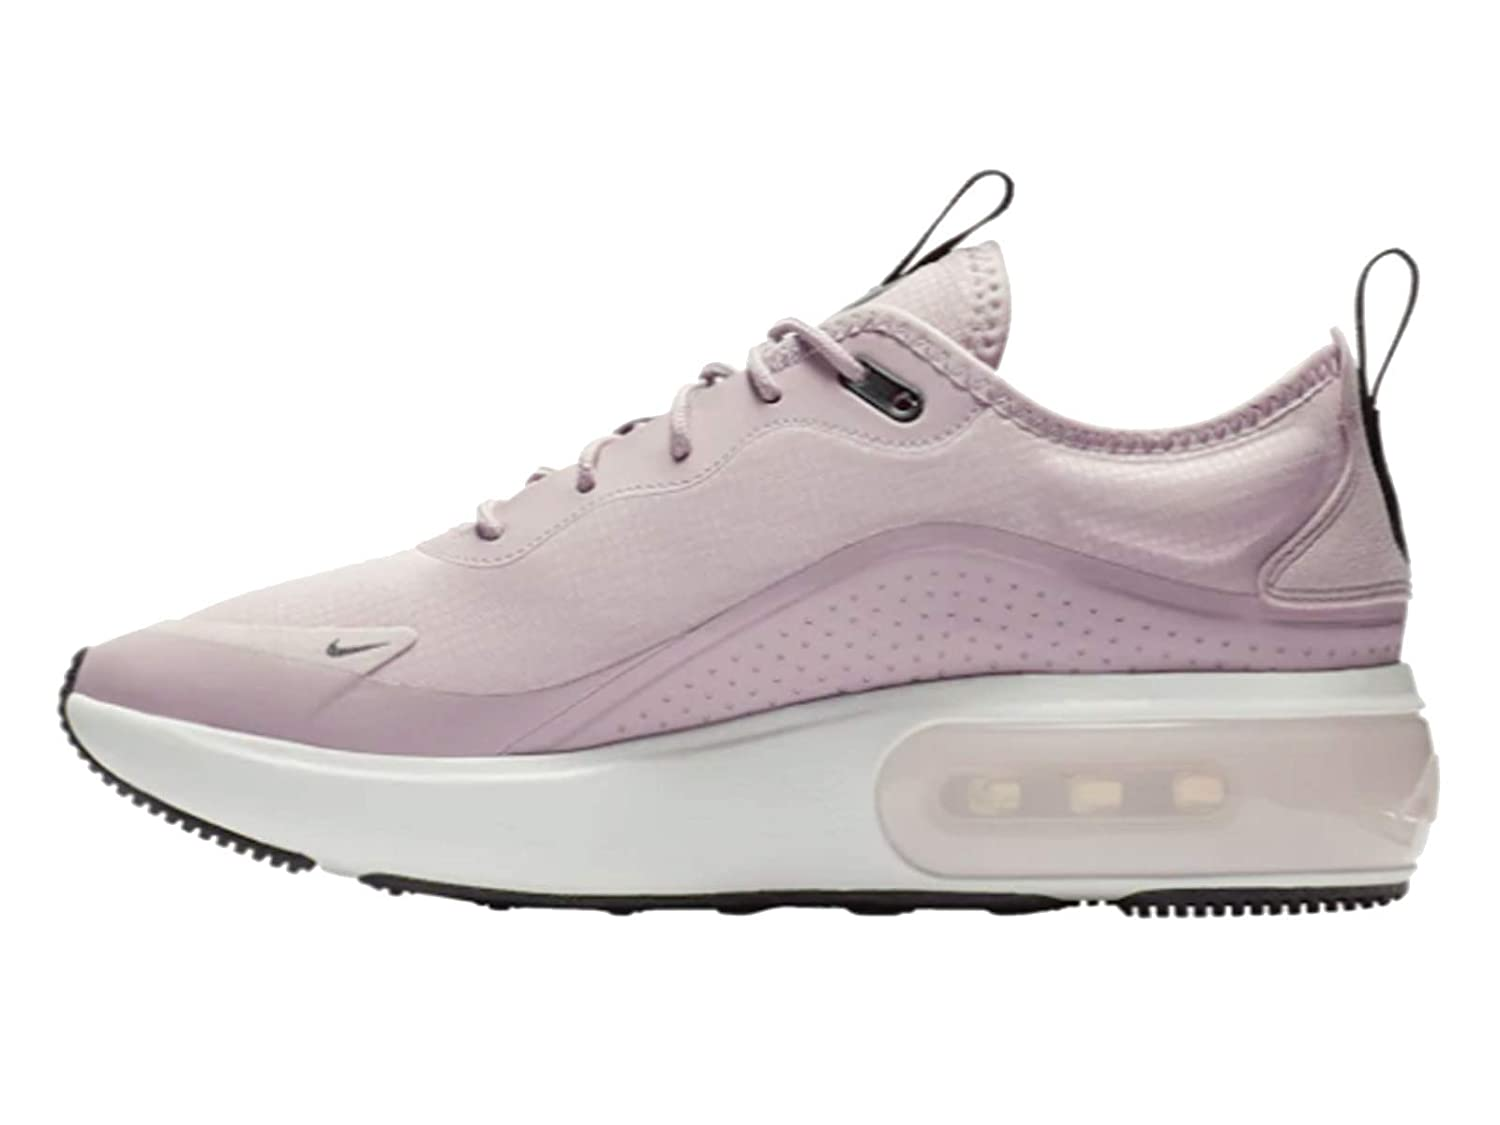 on sale 3c805 6c981 Nike Air Max Dia - Pink White (6 UK, Pink White)  Amazon.co.uk  Shoes   Bags